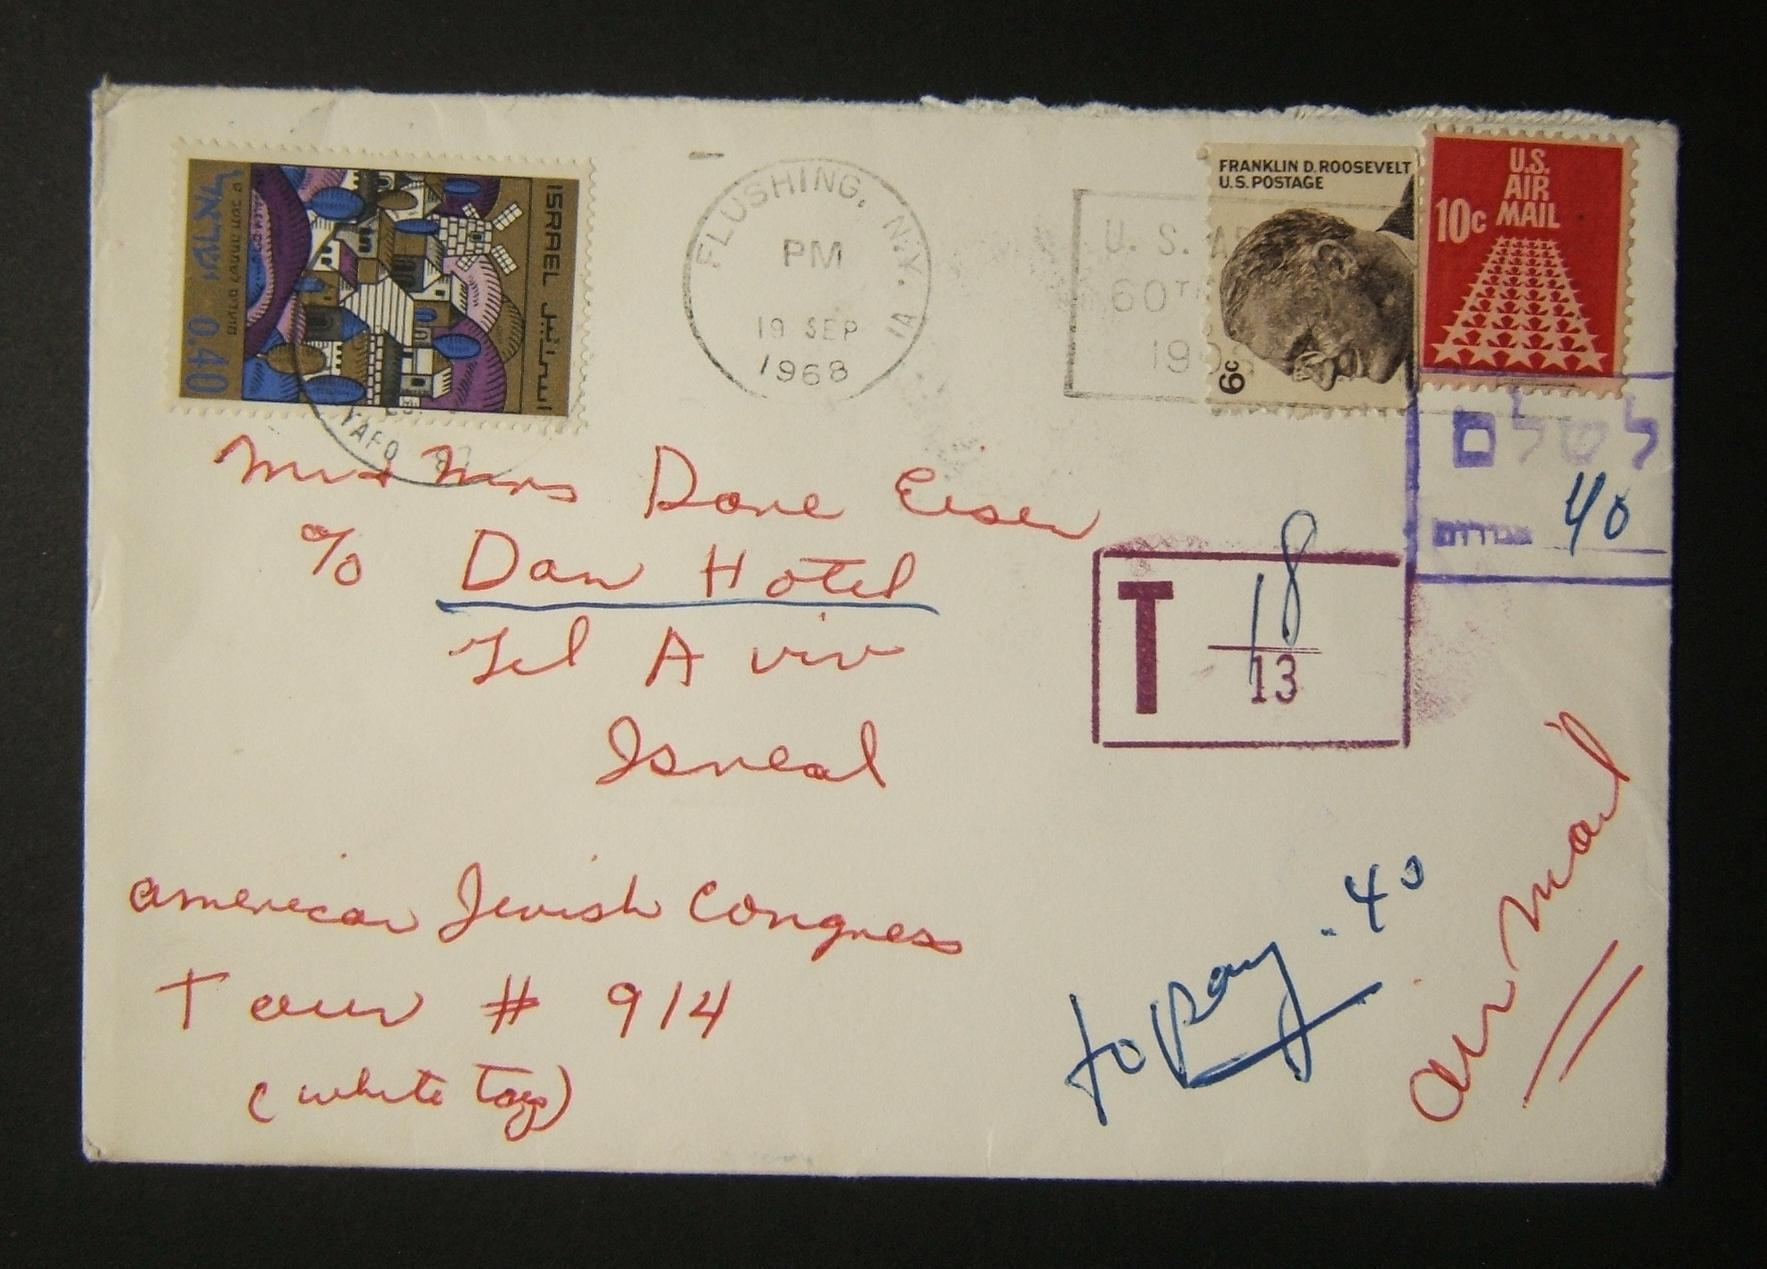 1968 incoming US postage due mail: 19 SEP 1968 airmail cover ex FLUSHING to TLV underfranked at 16c (tied by OMS120 US Army Reserve 60th Anniversary machine slogan) and marked for